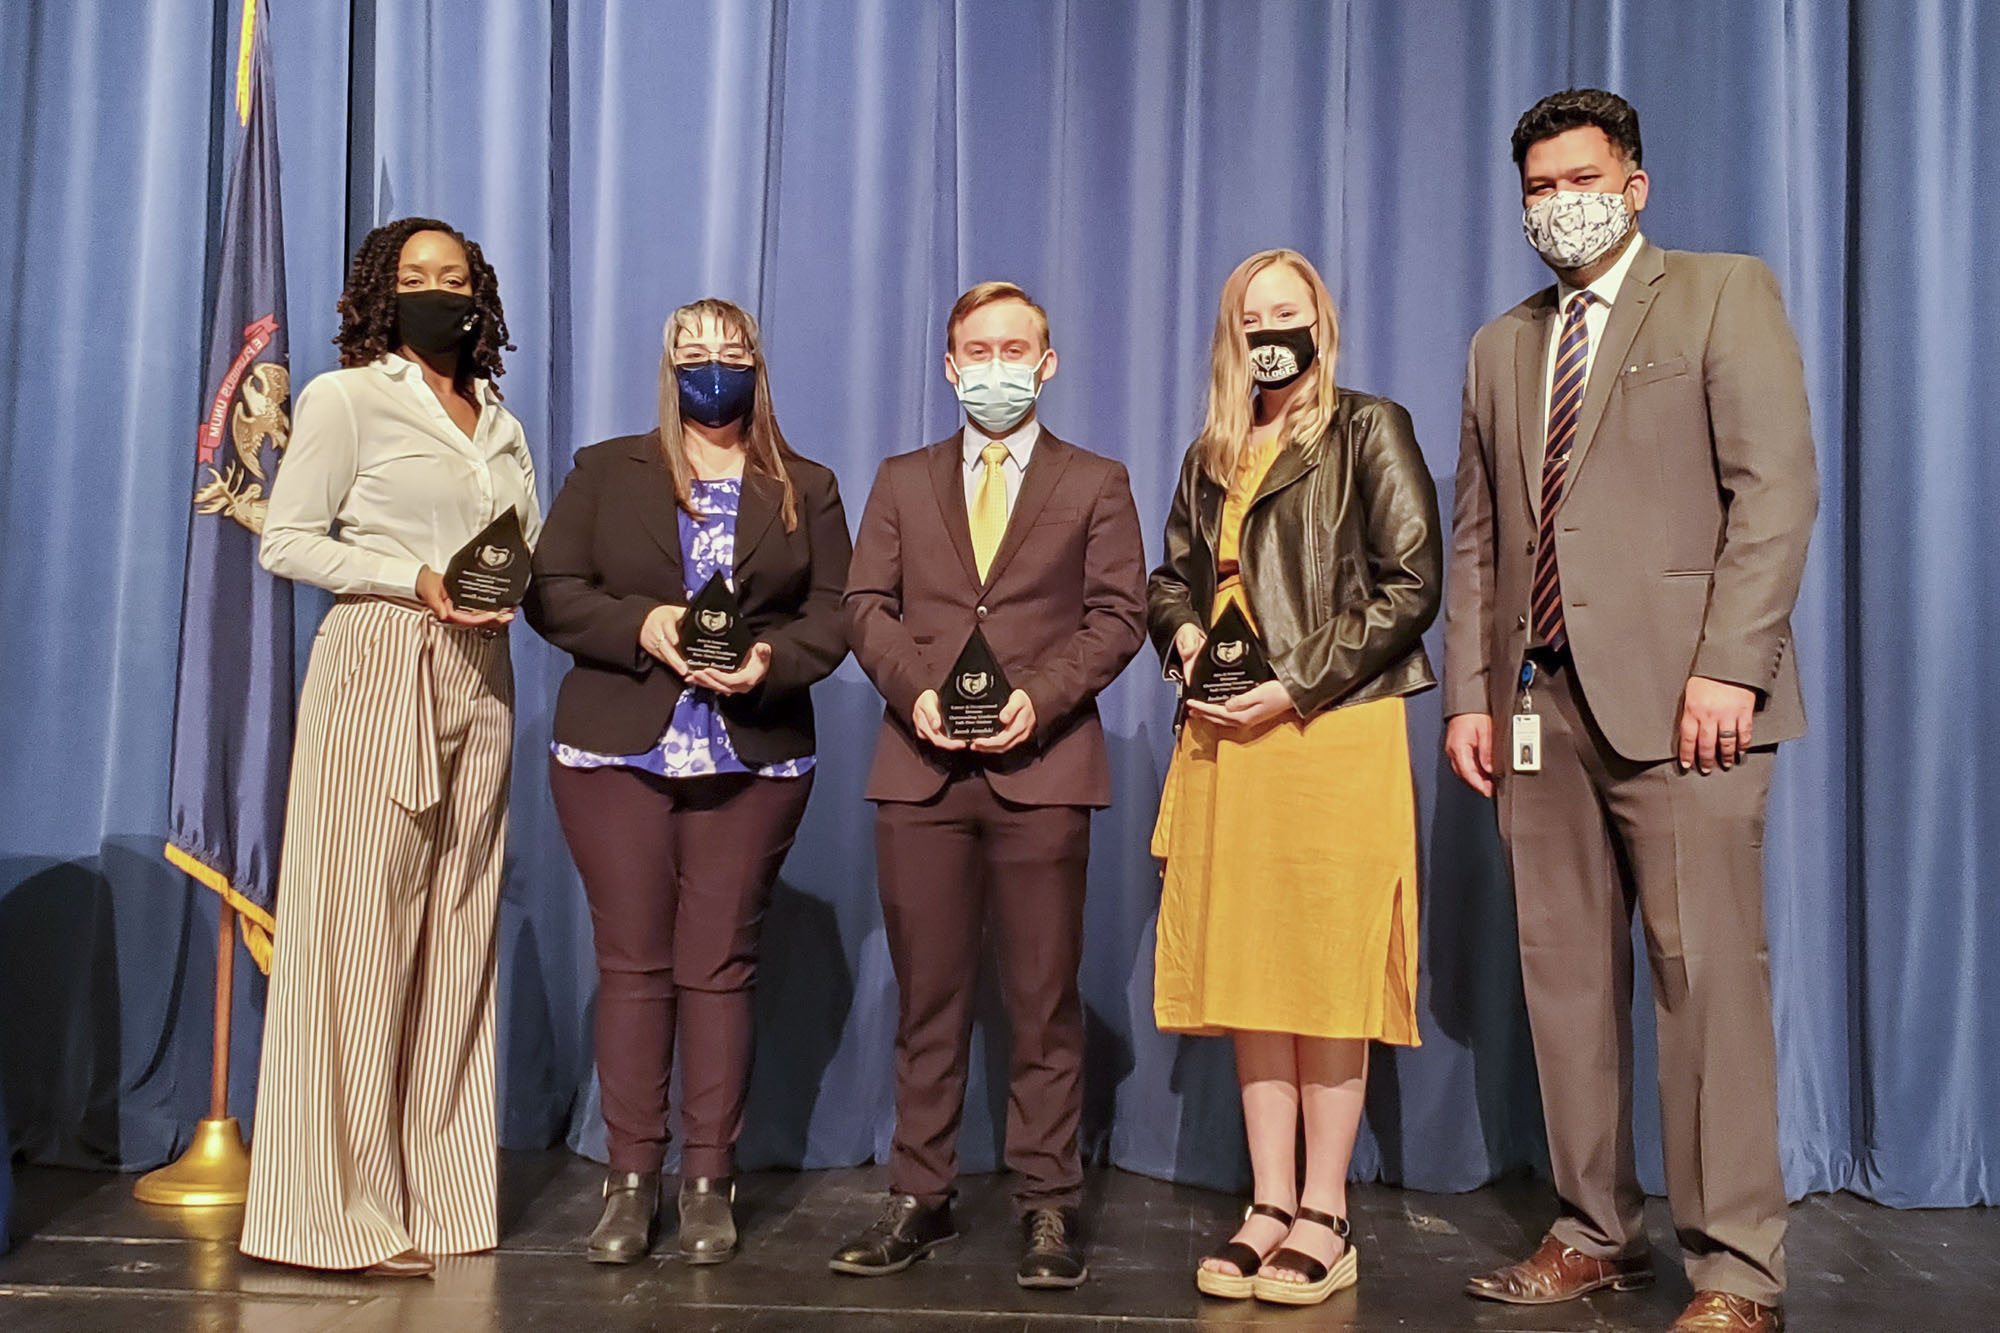 The 2021 Outstanding Division Graduates accept their awards. From left to right are Dr. Adrien Bennings, president of KCC; Gaylene Rowland; Jacob Janofski; Isabella Proulx; and Dr. Paul Watson, vice president for Instruction at KCC. Not pictured are student award winners Robert Essex and Sarah Smith.